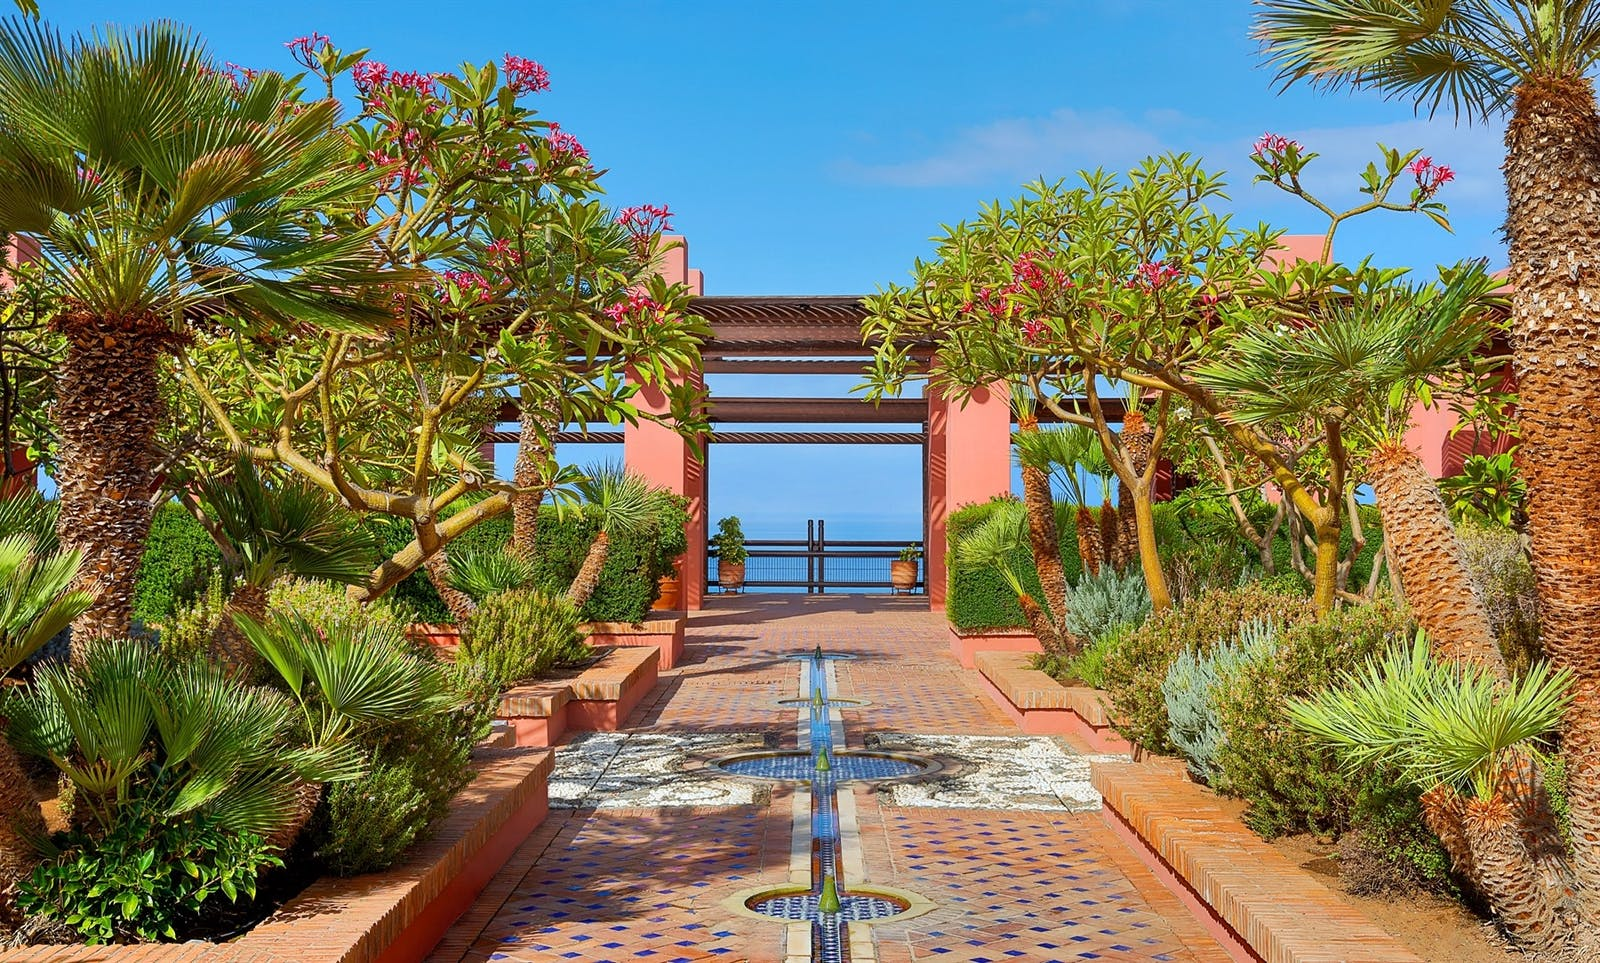 Persian Garden, The Ritz-Carlton, Abama, Tenerife